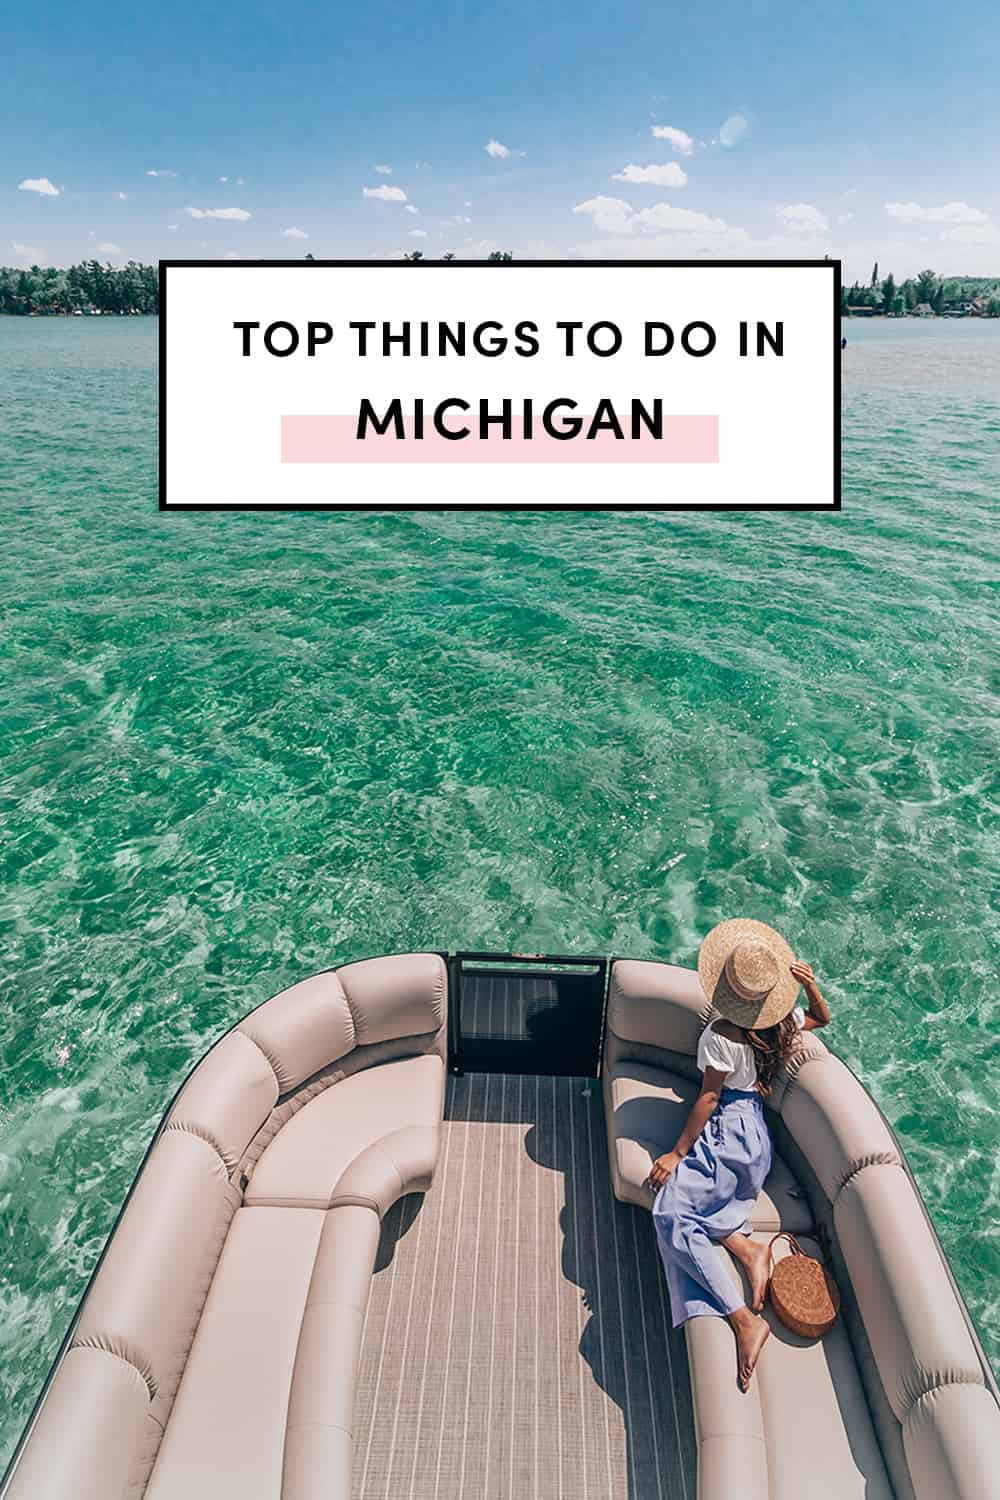 Top Things To Do In Michigan